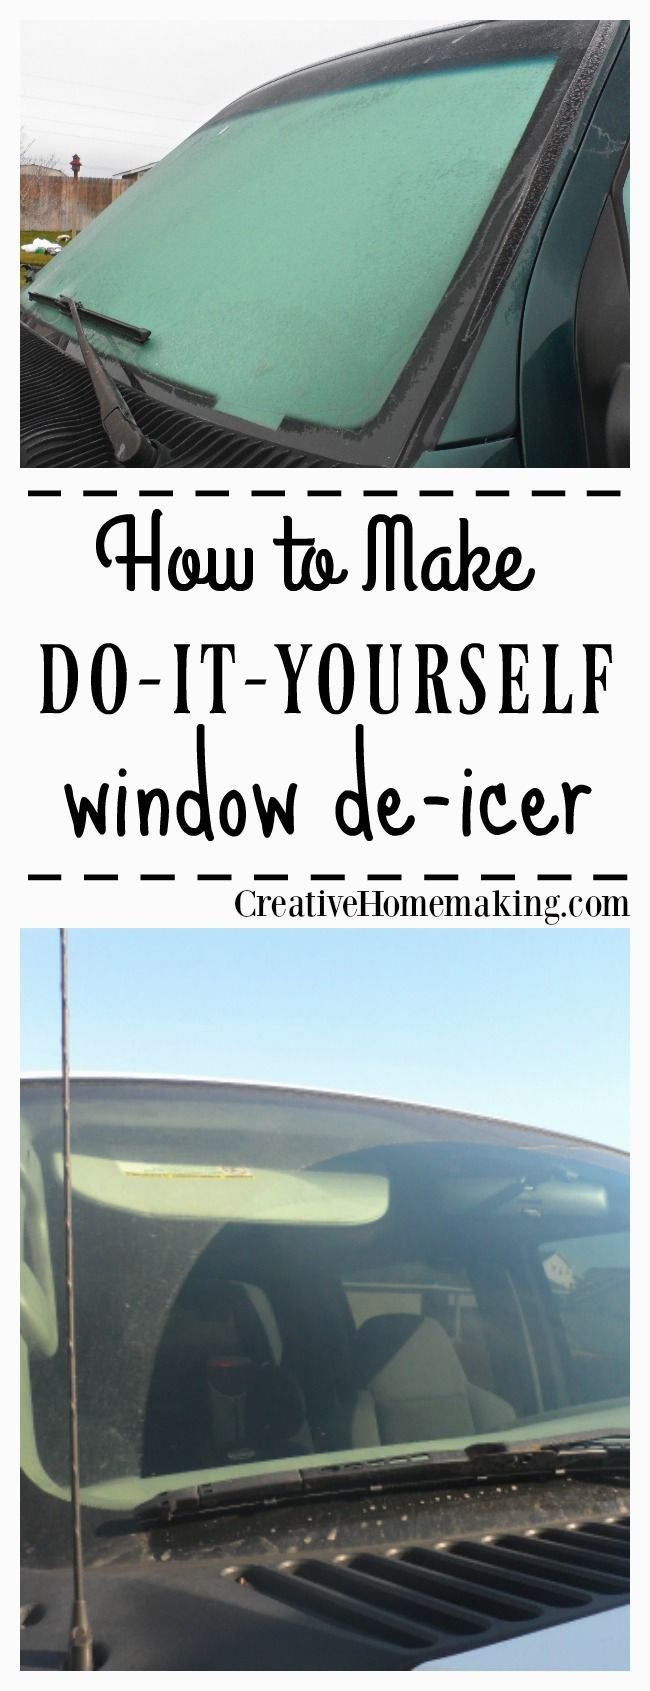 Homemade windshield de-icer = 2 parts rubbing alcohol and 1 part water. Ice melts instantly. Works on locks too! #diy #cleaningtips